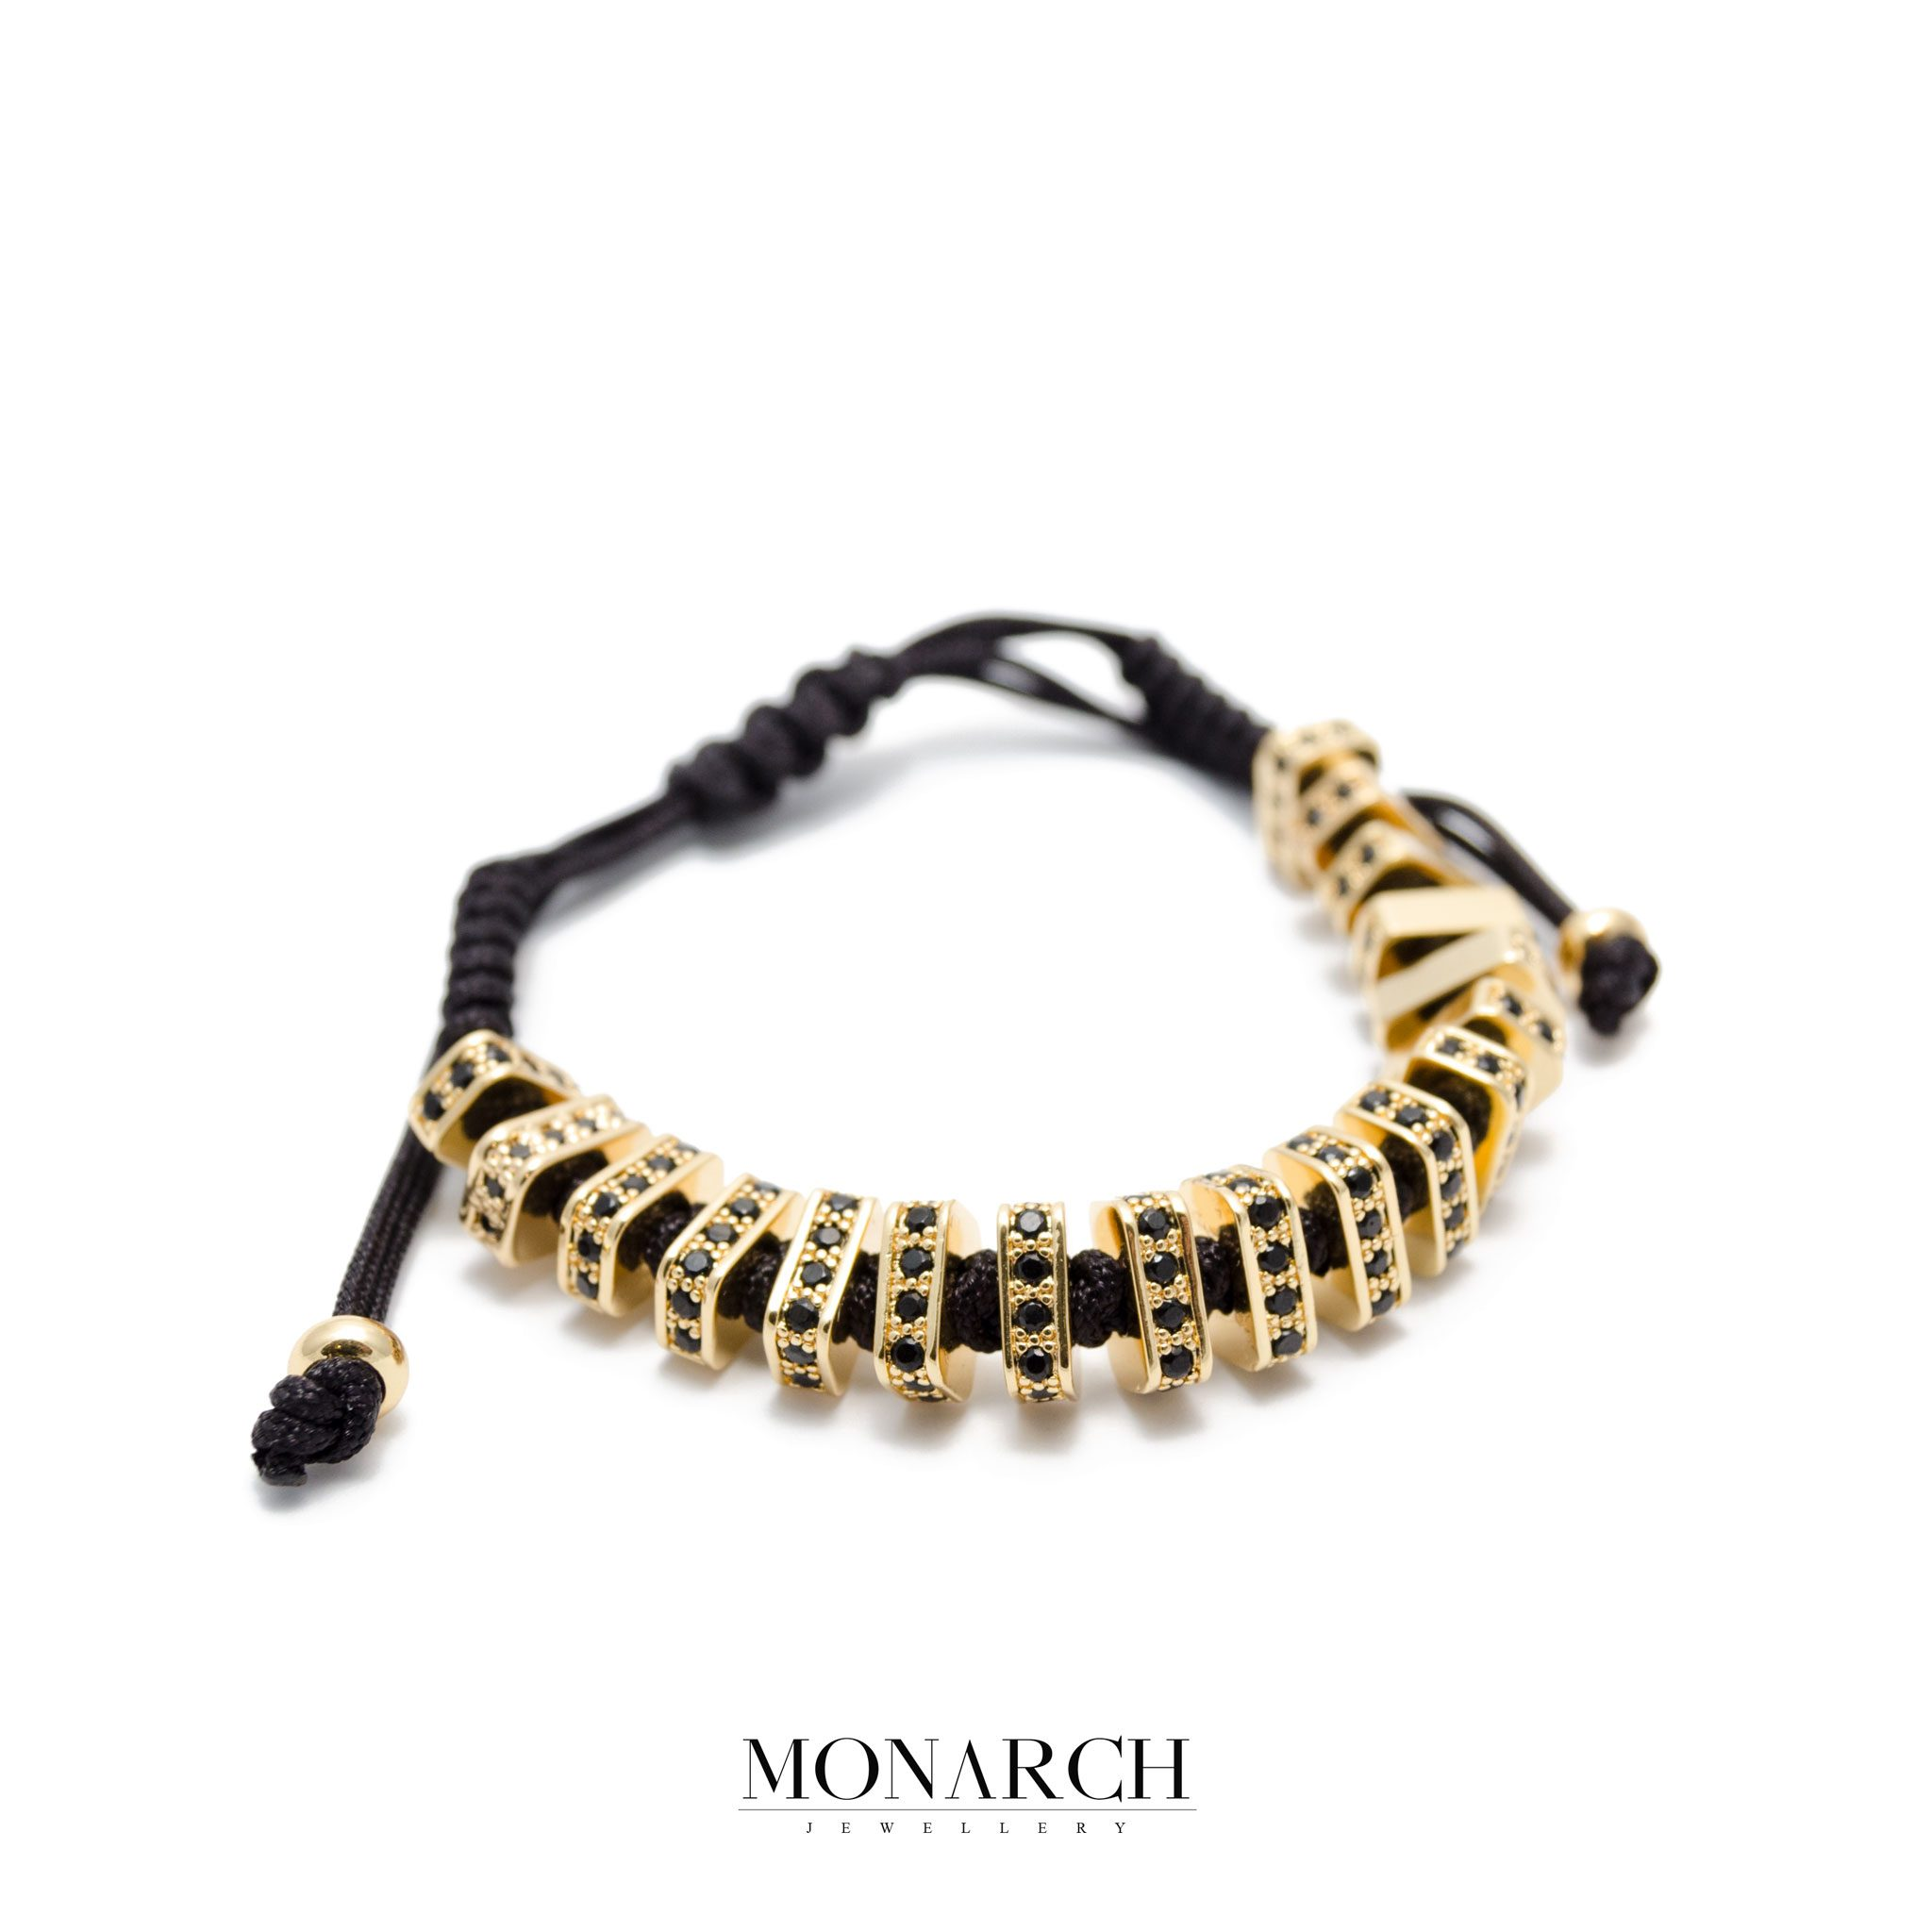 Monarch Jewellery Black&Gold Zircon Luxury Macrame Bracelet